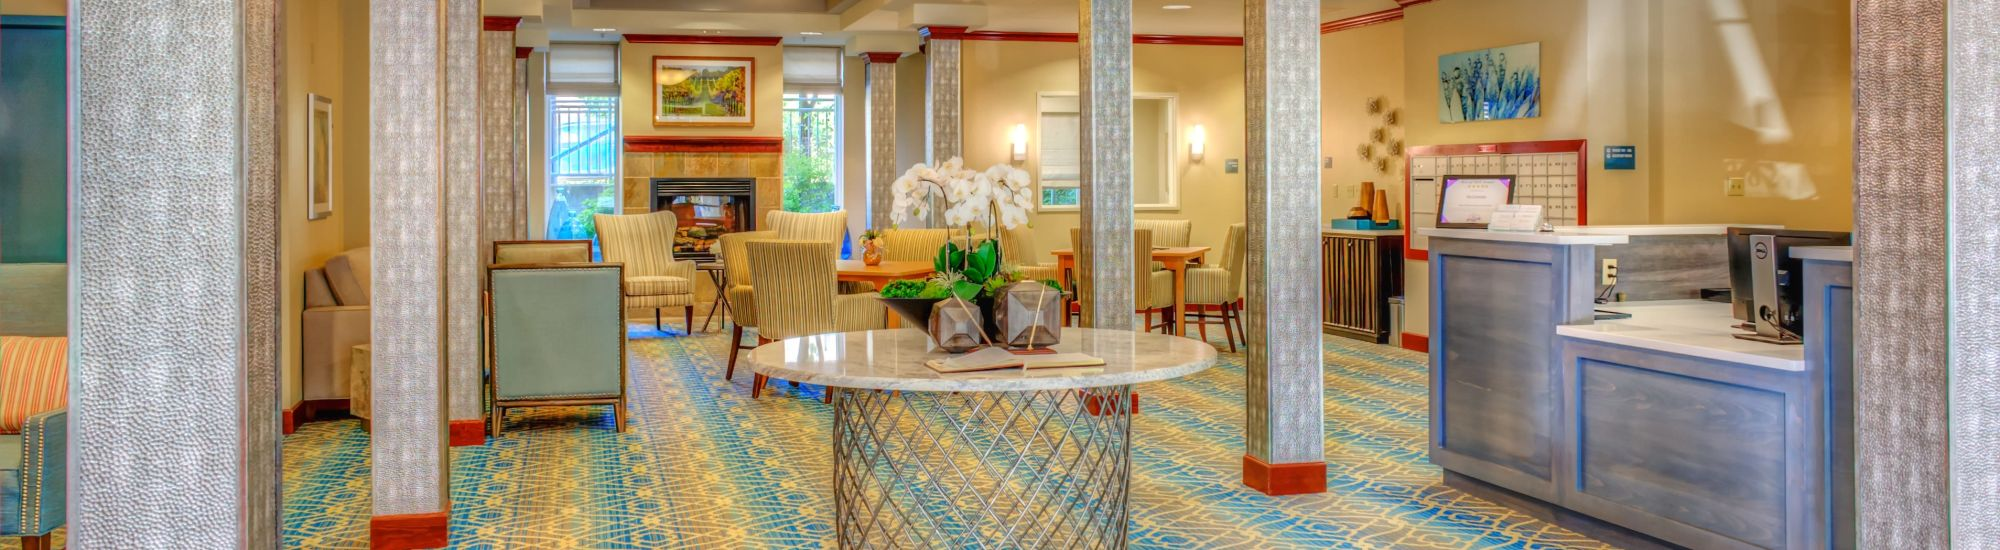 Our community at The Creekside in Woodinville, Washington